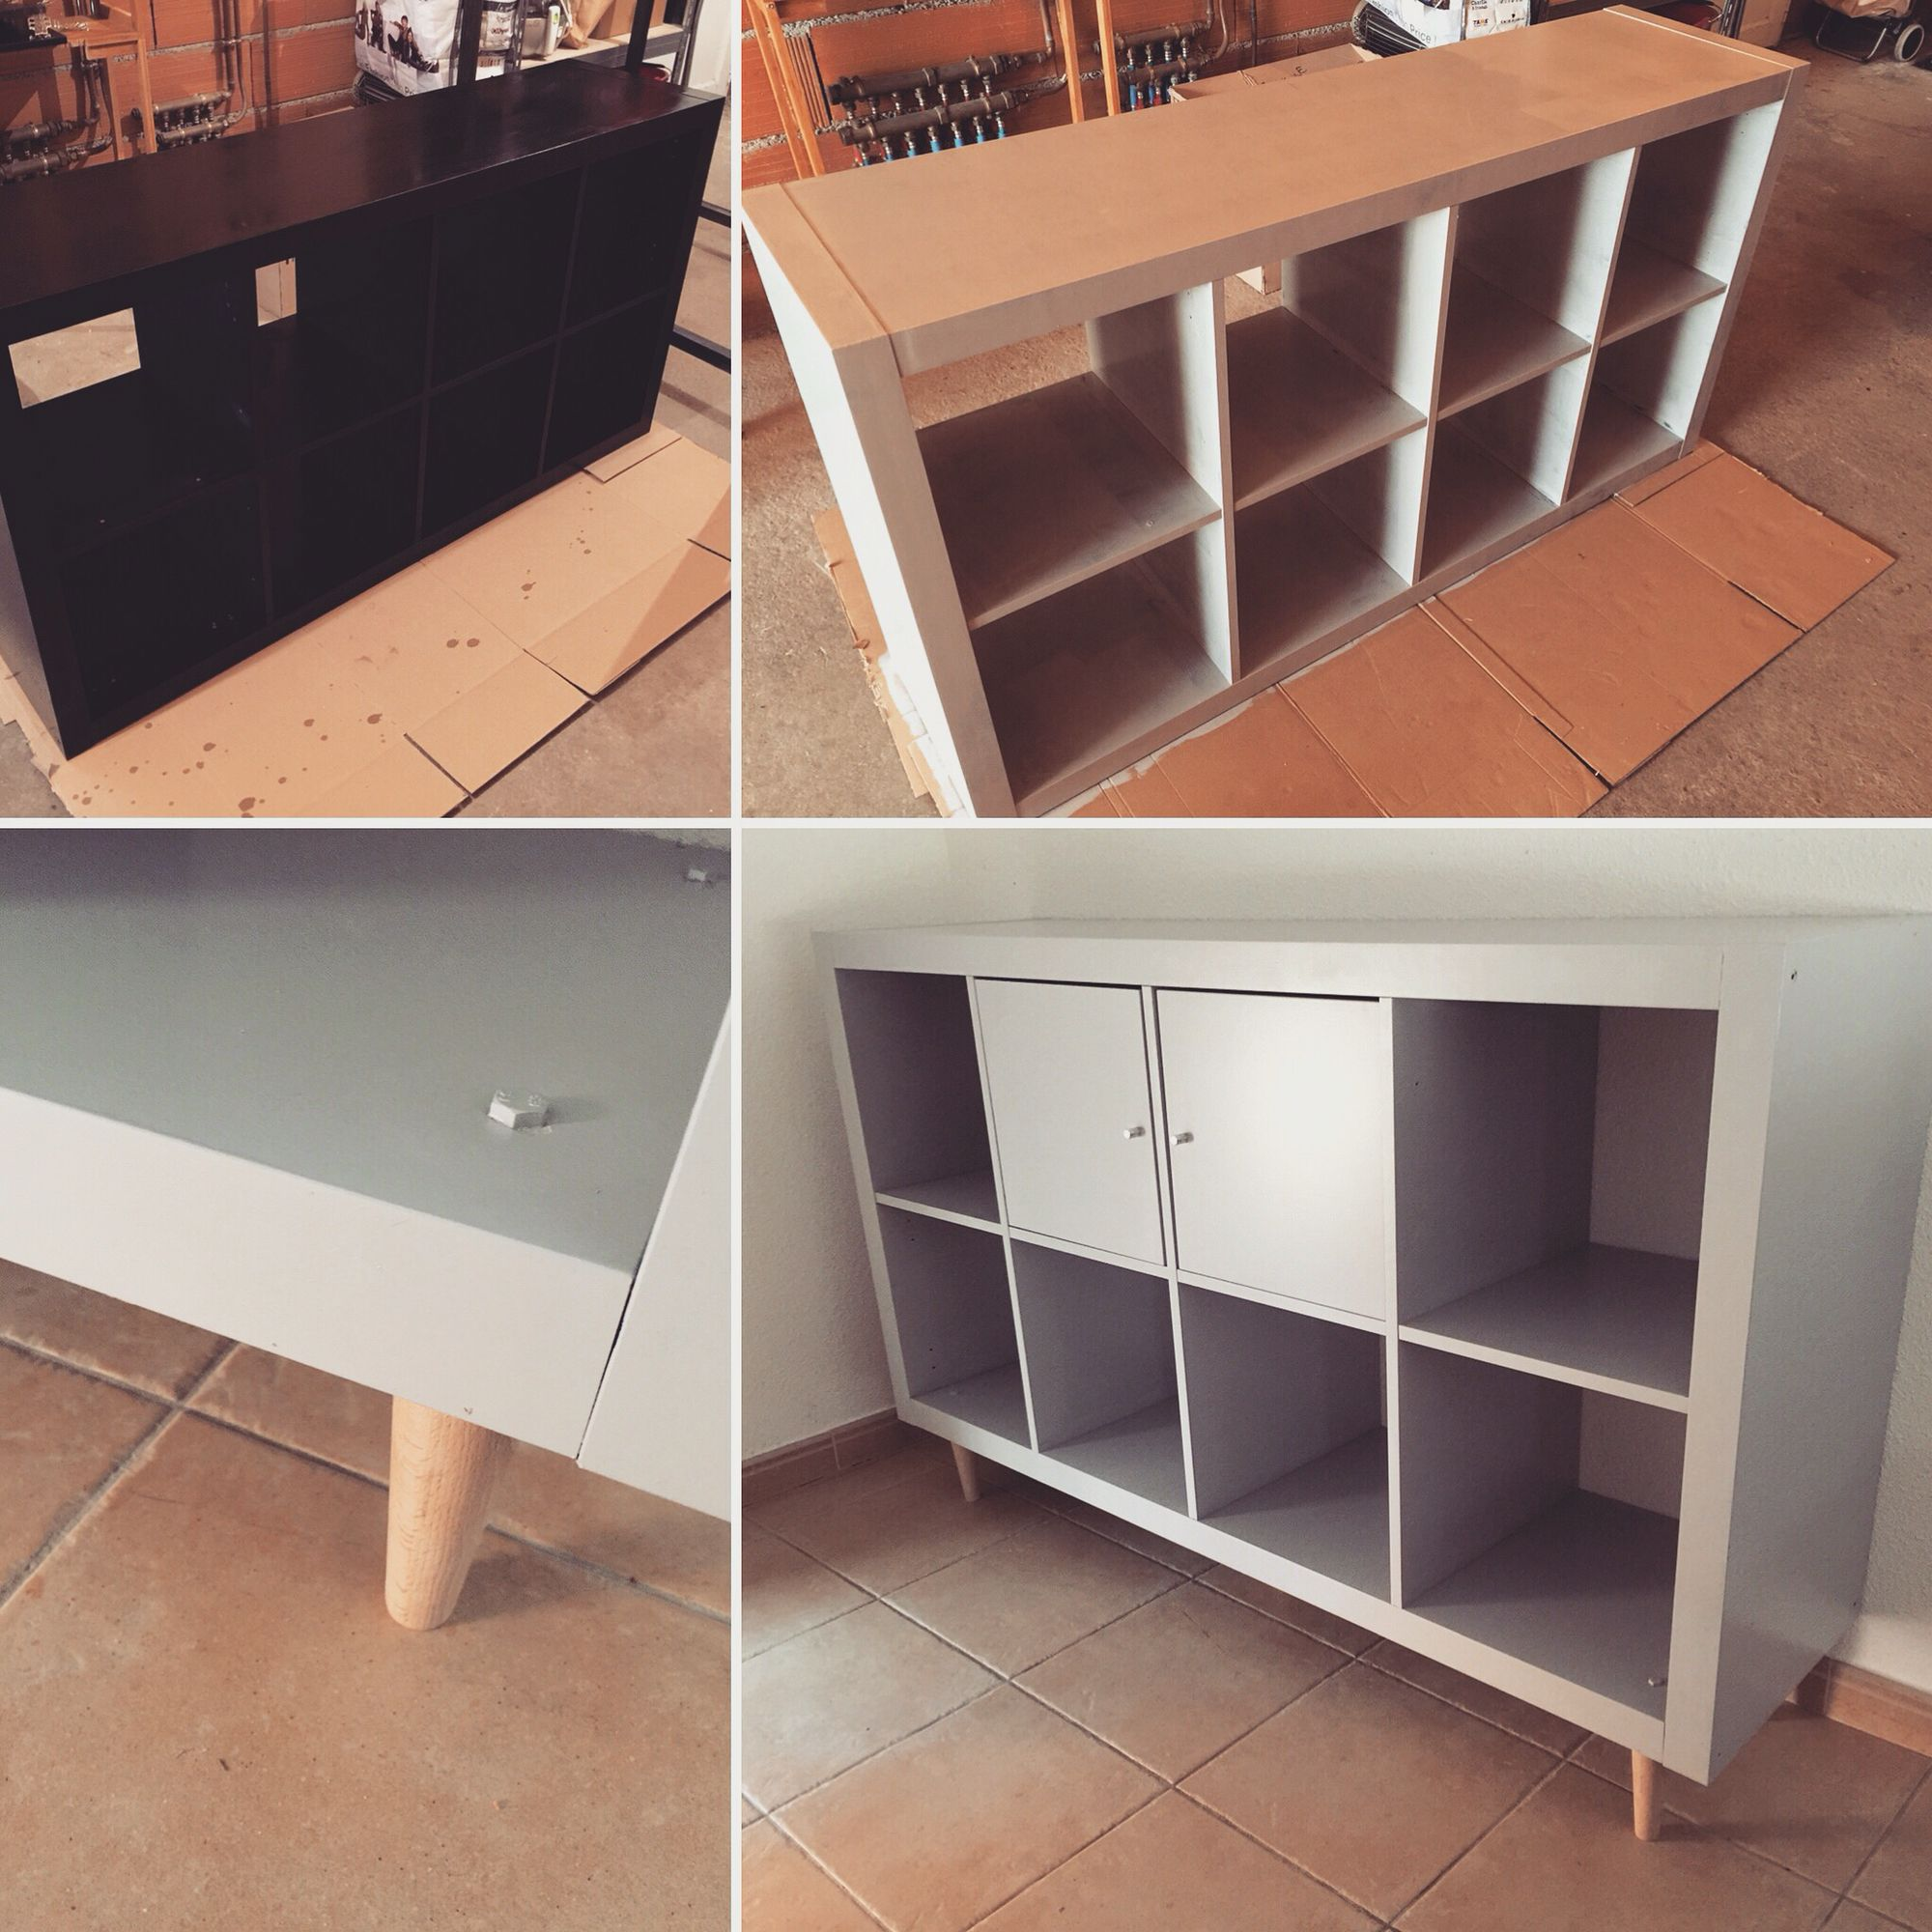 Customiser Meuble Ikea Expedit - Customiser Un Meuble Ikea Kallax Ou Expedit Cr Ation By Delph Ine [mjhdah]http://rennesdesbonsplans.com/wp-content/uploads/2014/04/exepdit-blog-mamie-suzette.gif